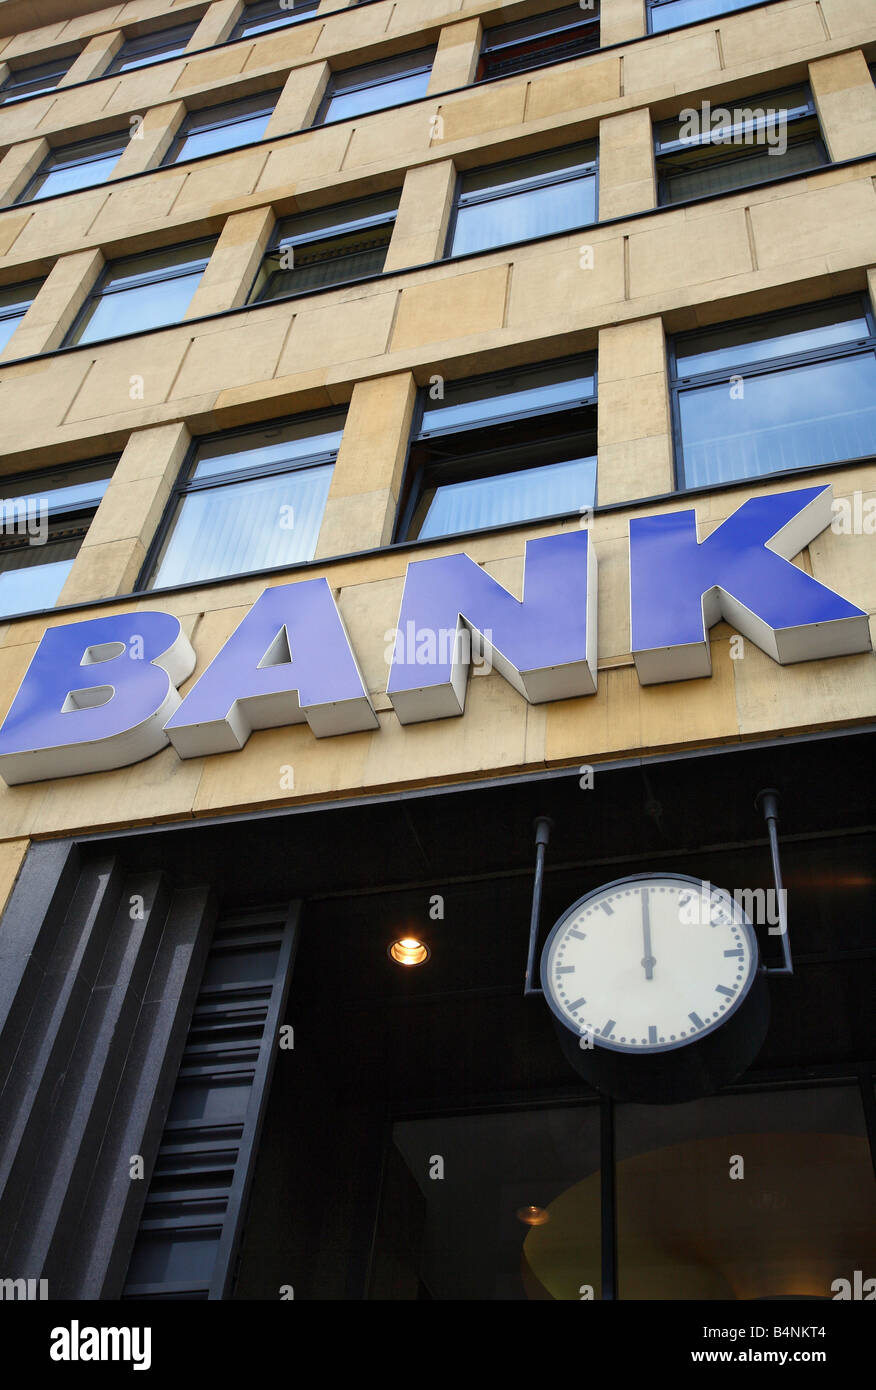 BANK sign on a building and a clock showing twelve o'clock - Stock Image